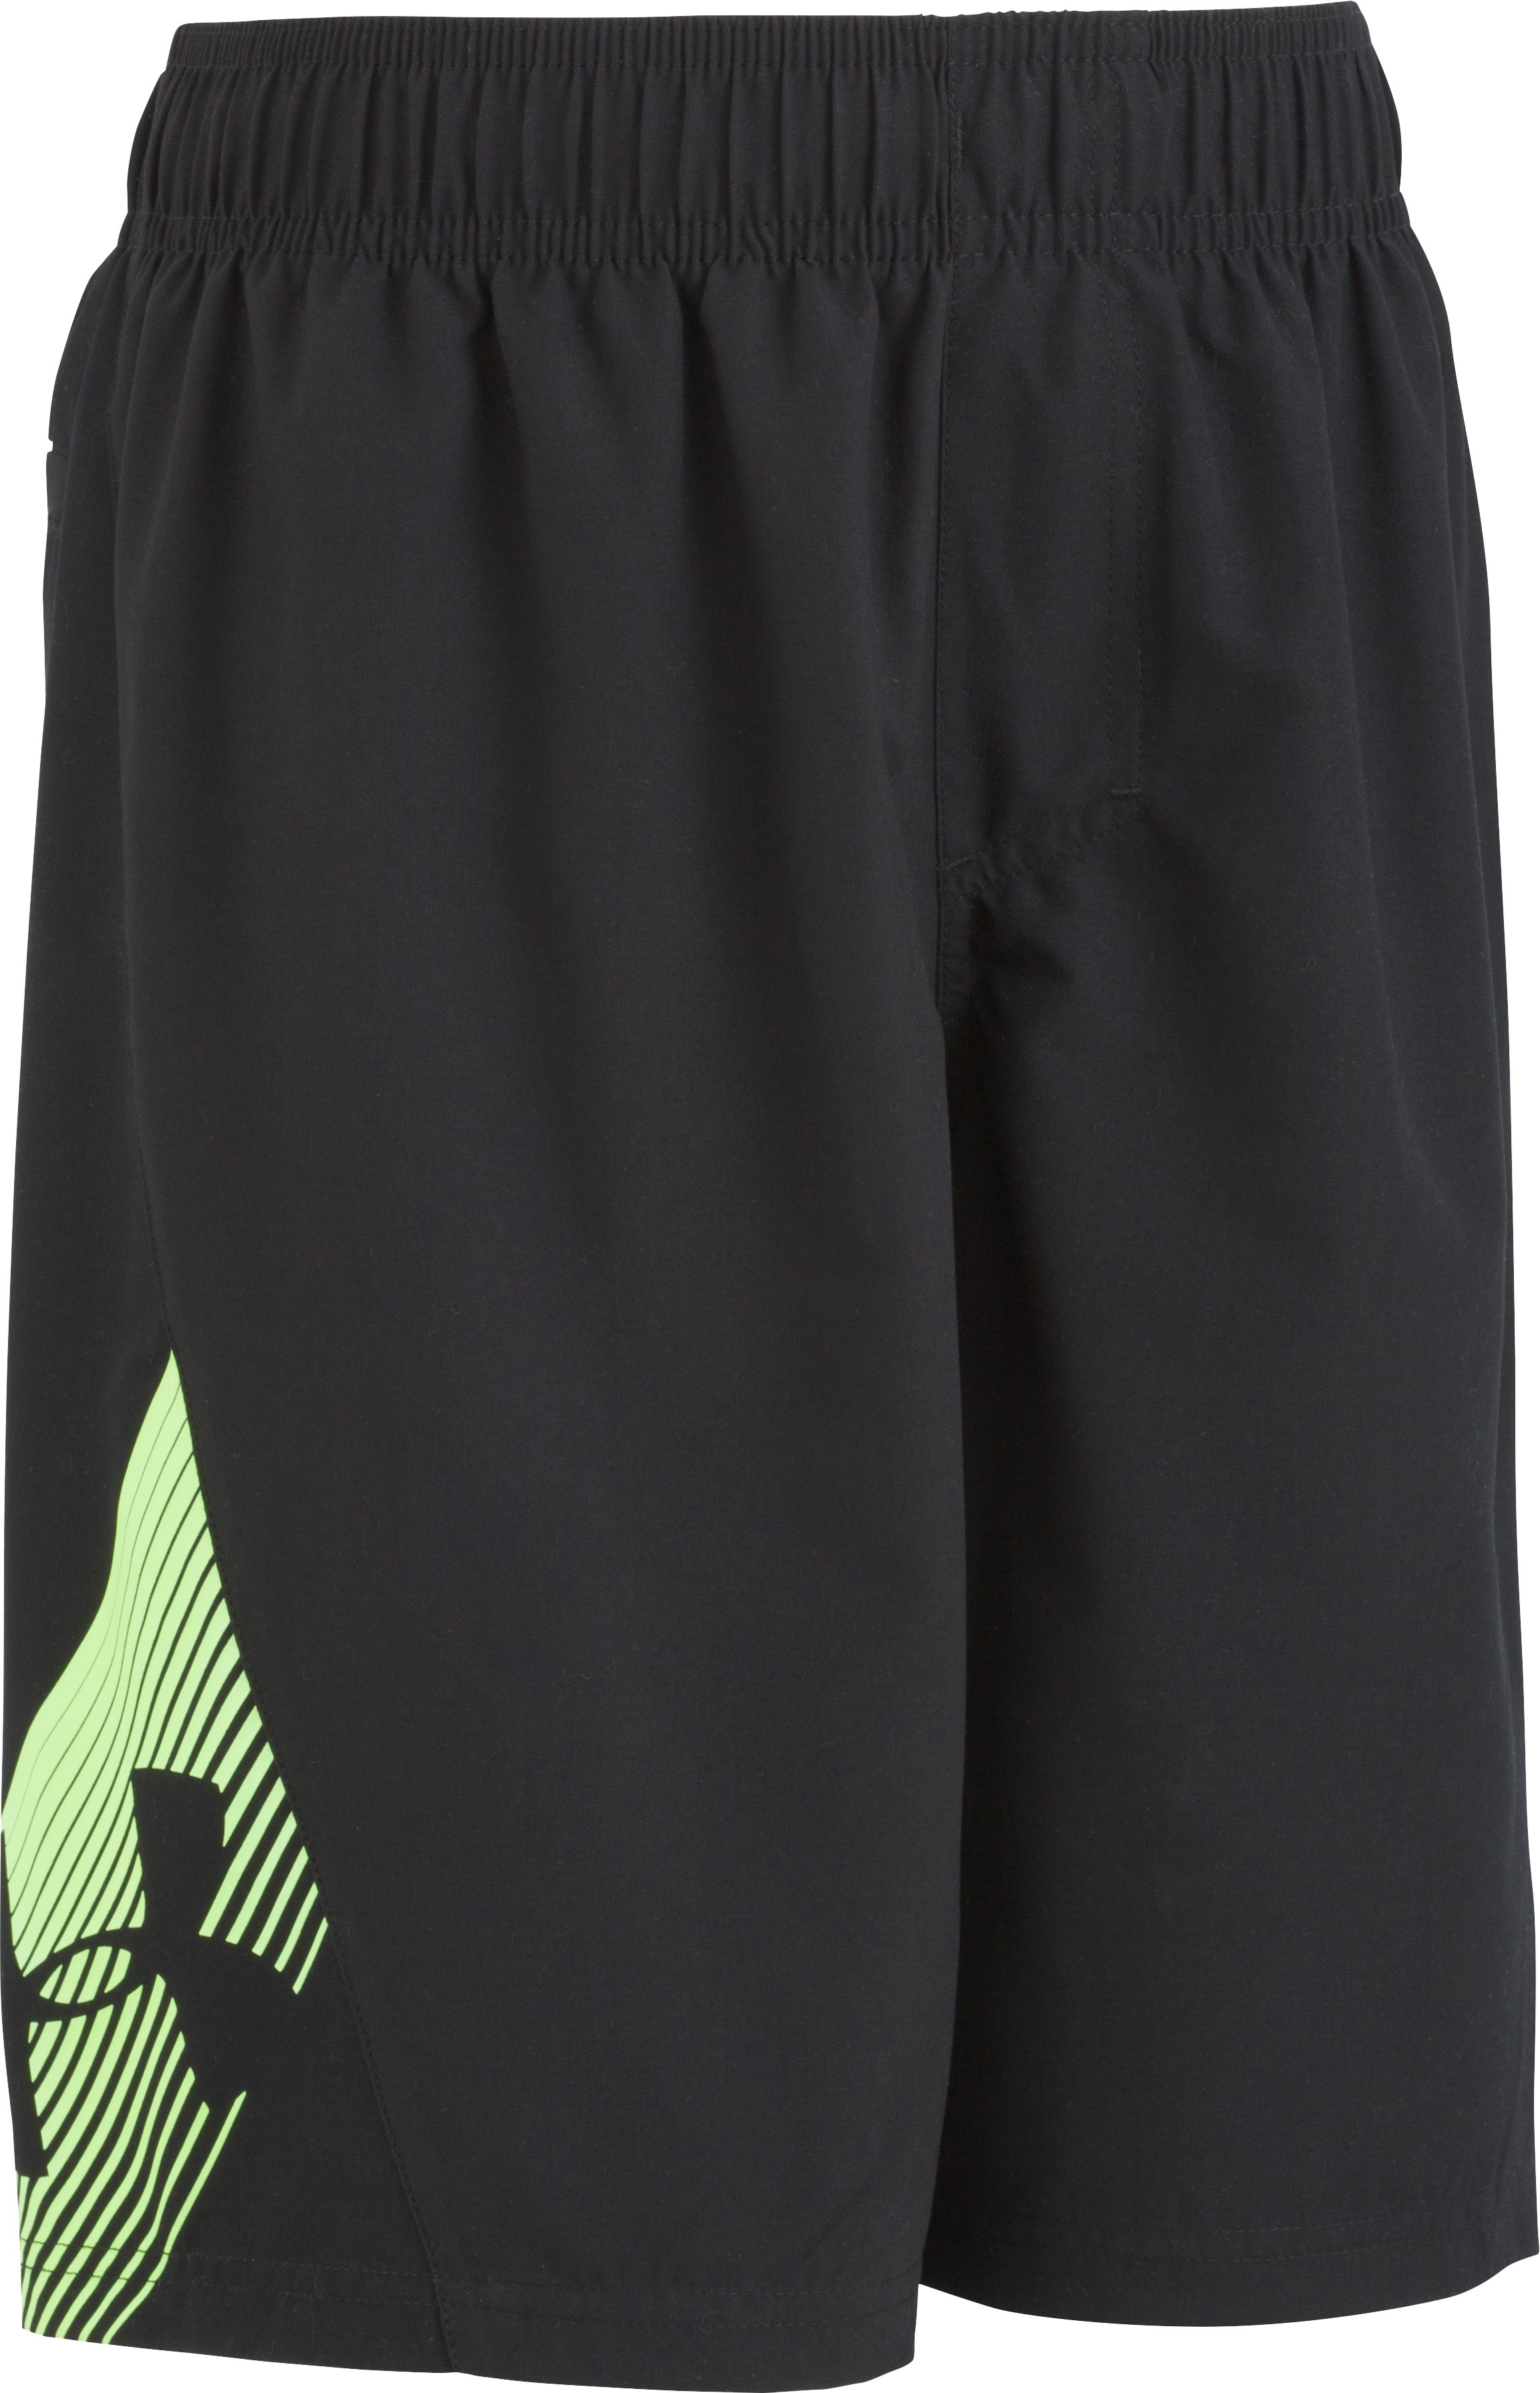 Boys' Pre-School UA Entry Solid Boardshorts, Black , Laydown